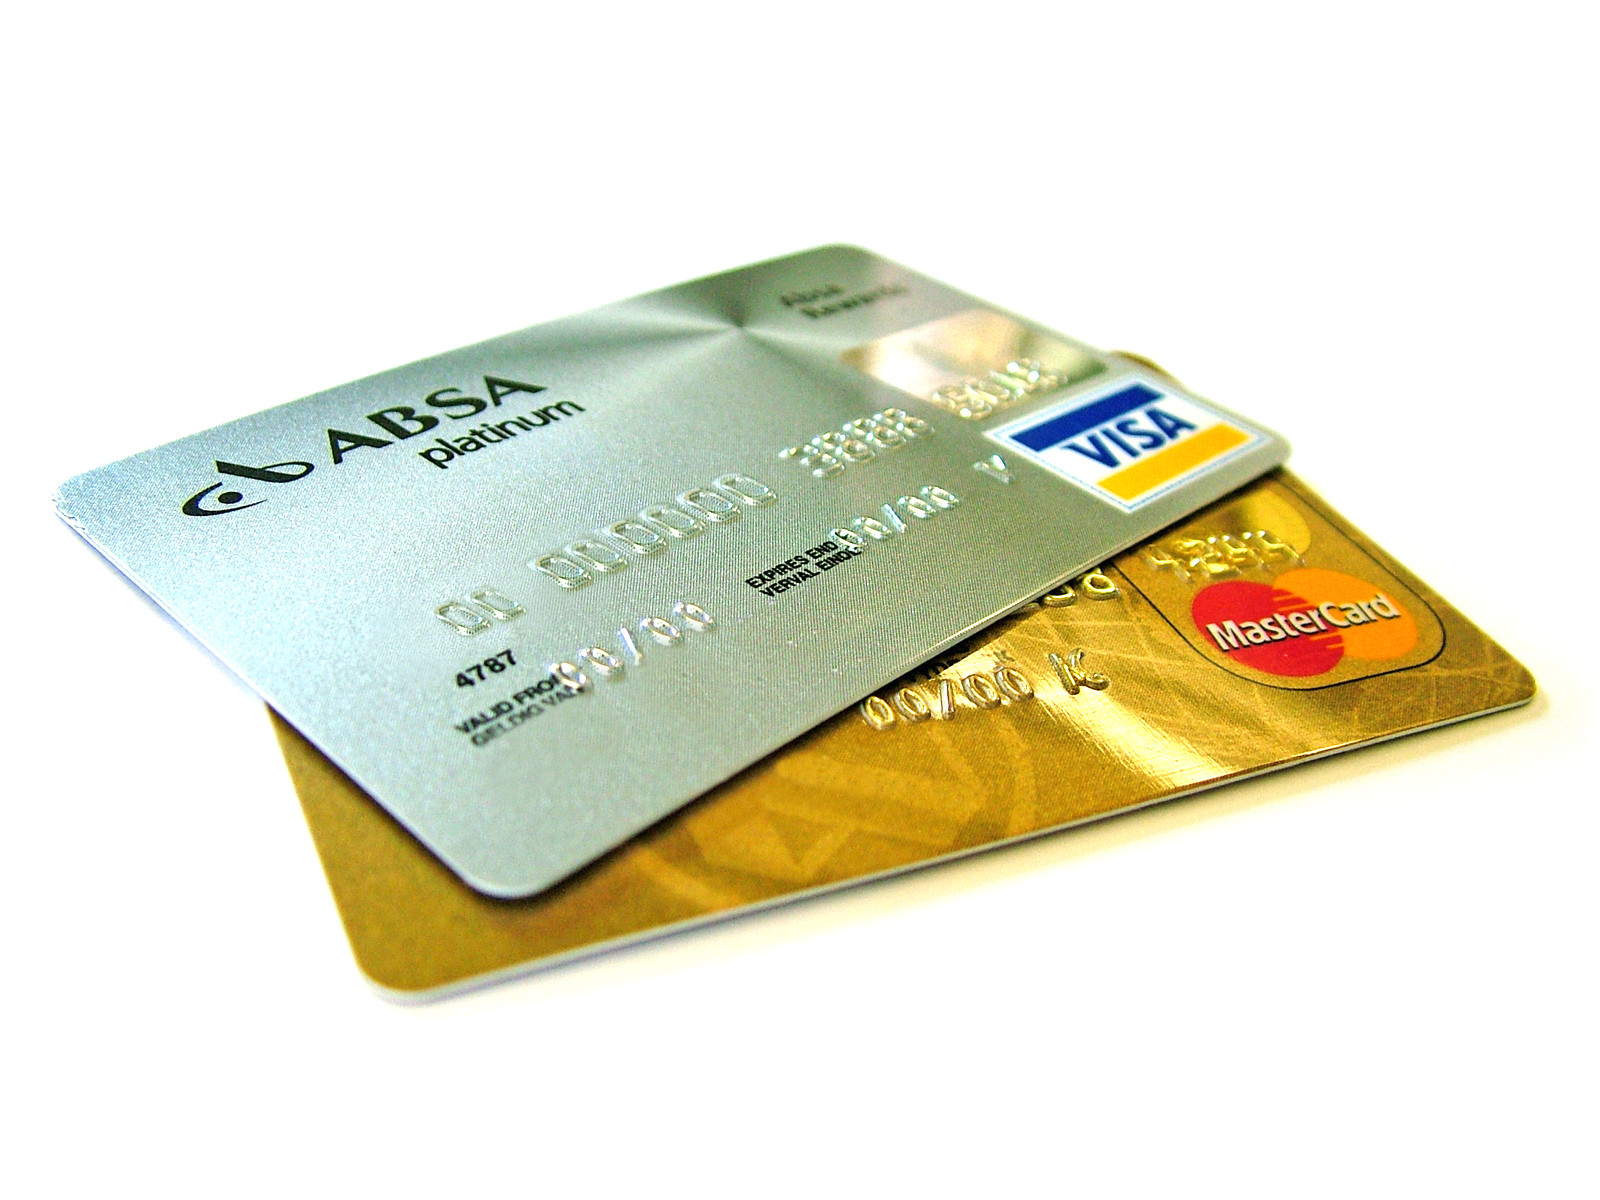 Card Holder Name Meaning In Marathi Payment Card Wikipedia